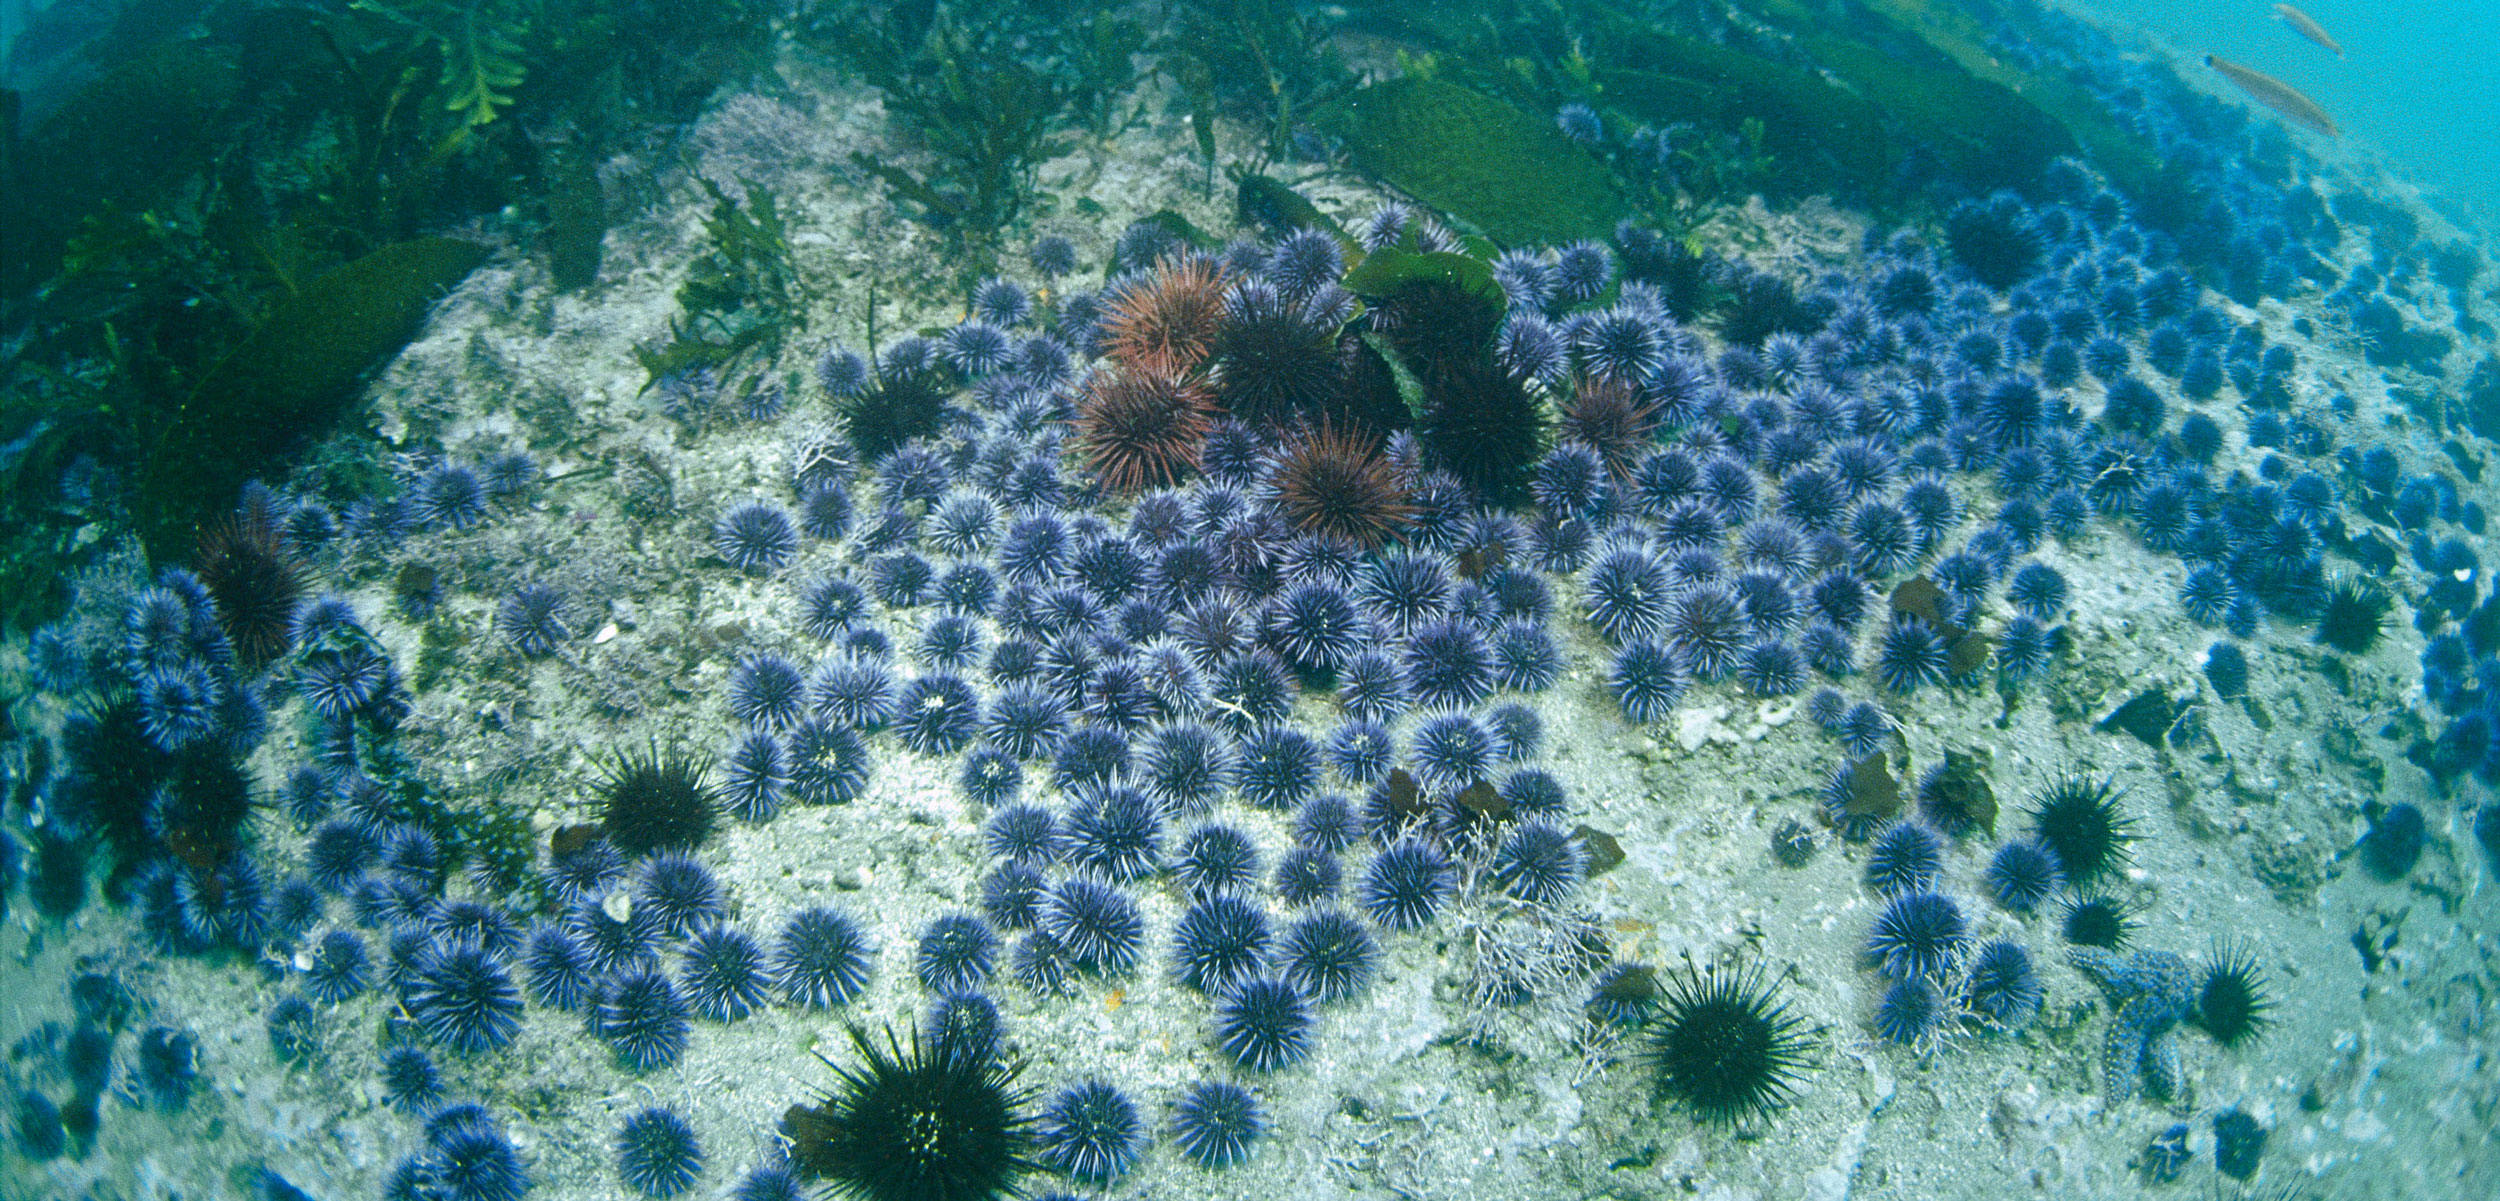 Purple Sea Urchin (Strongylocentrotus purpuratus) barren